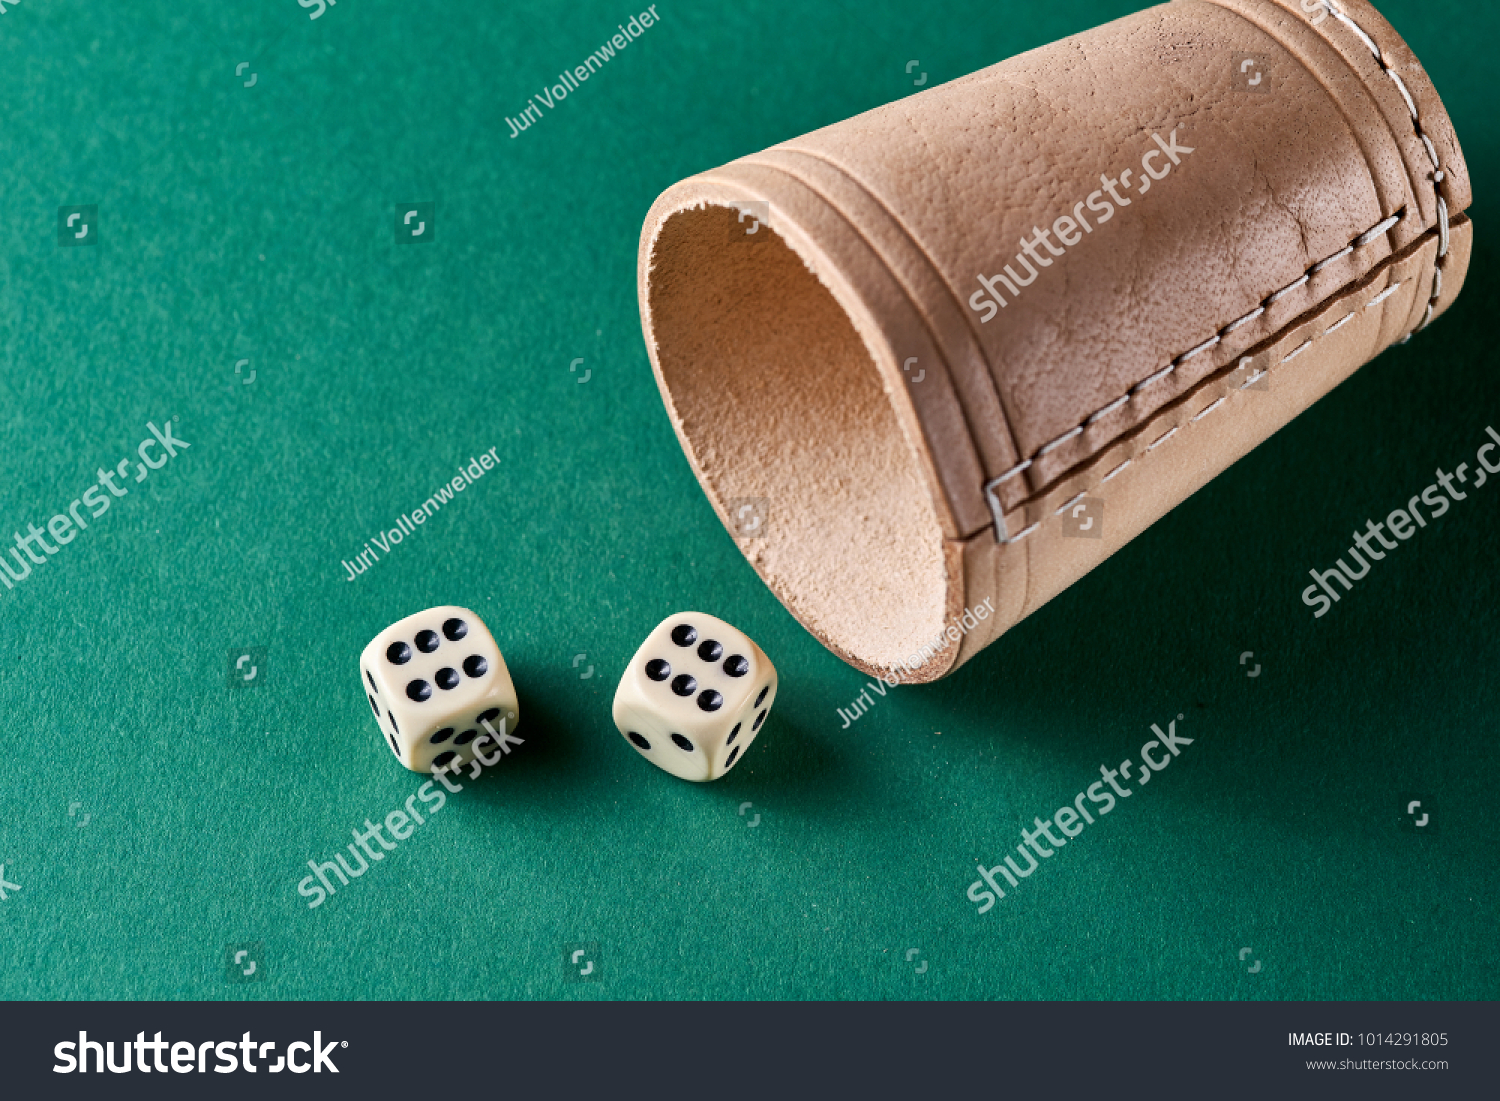 dice leather glass on green background stock photo royalty free